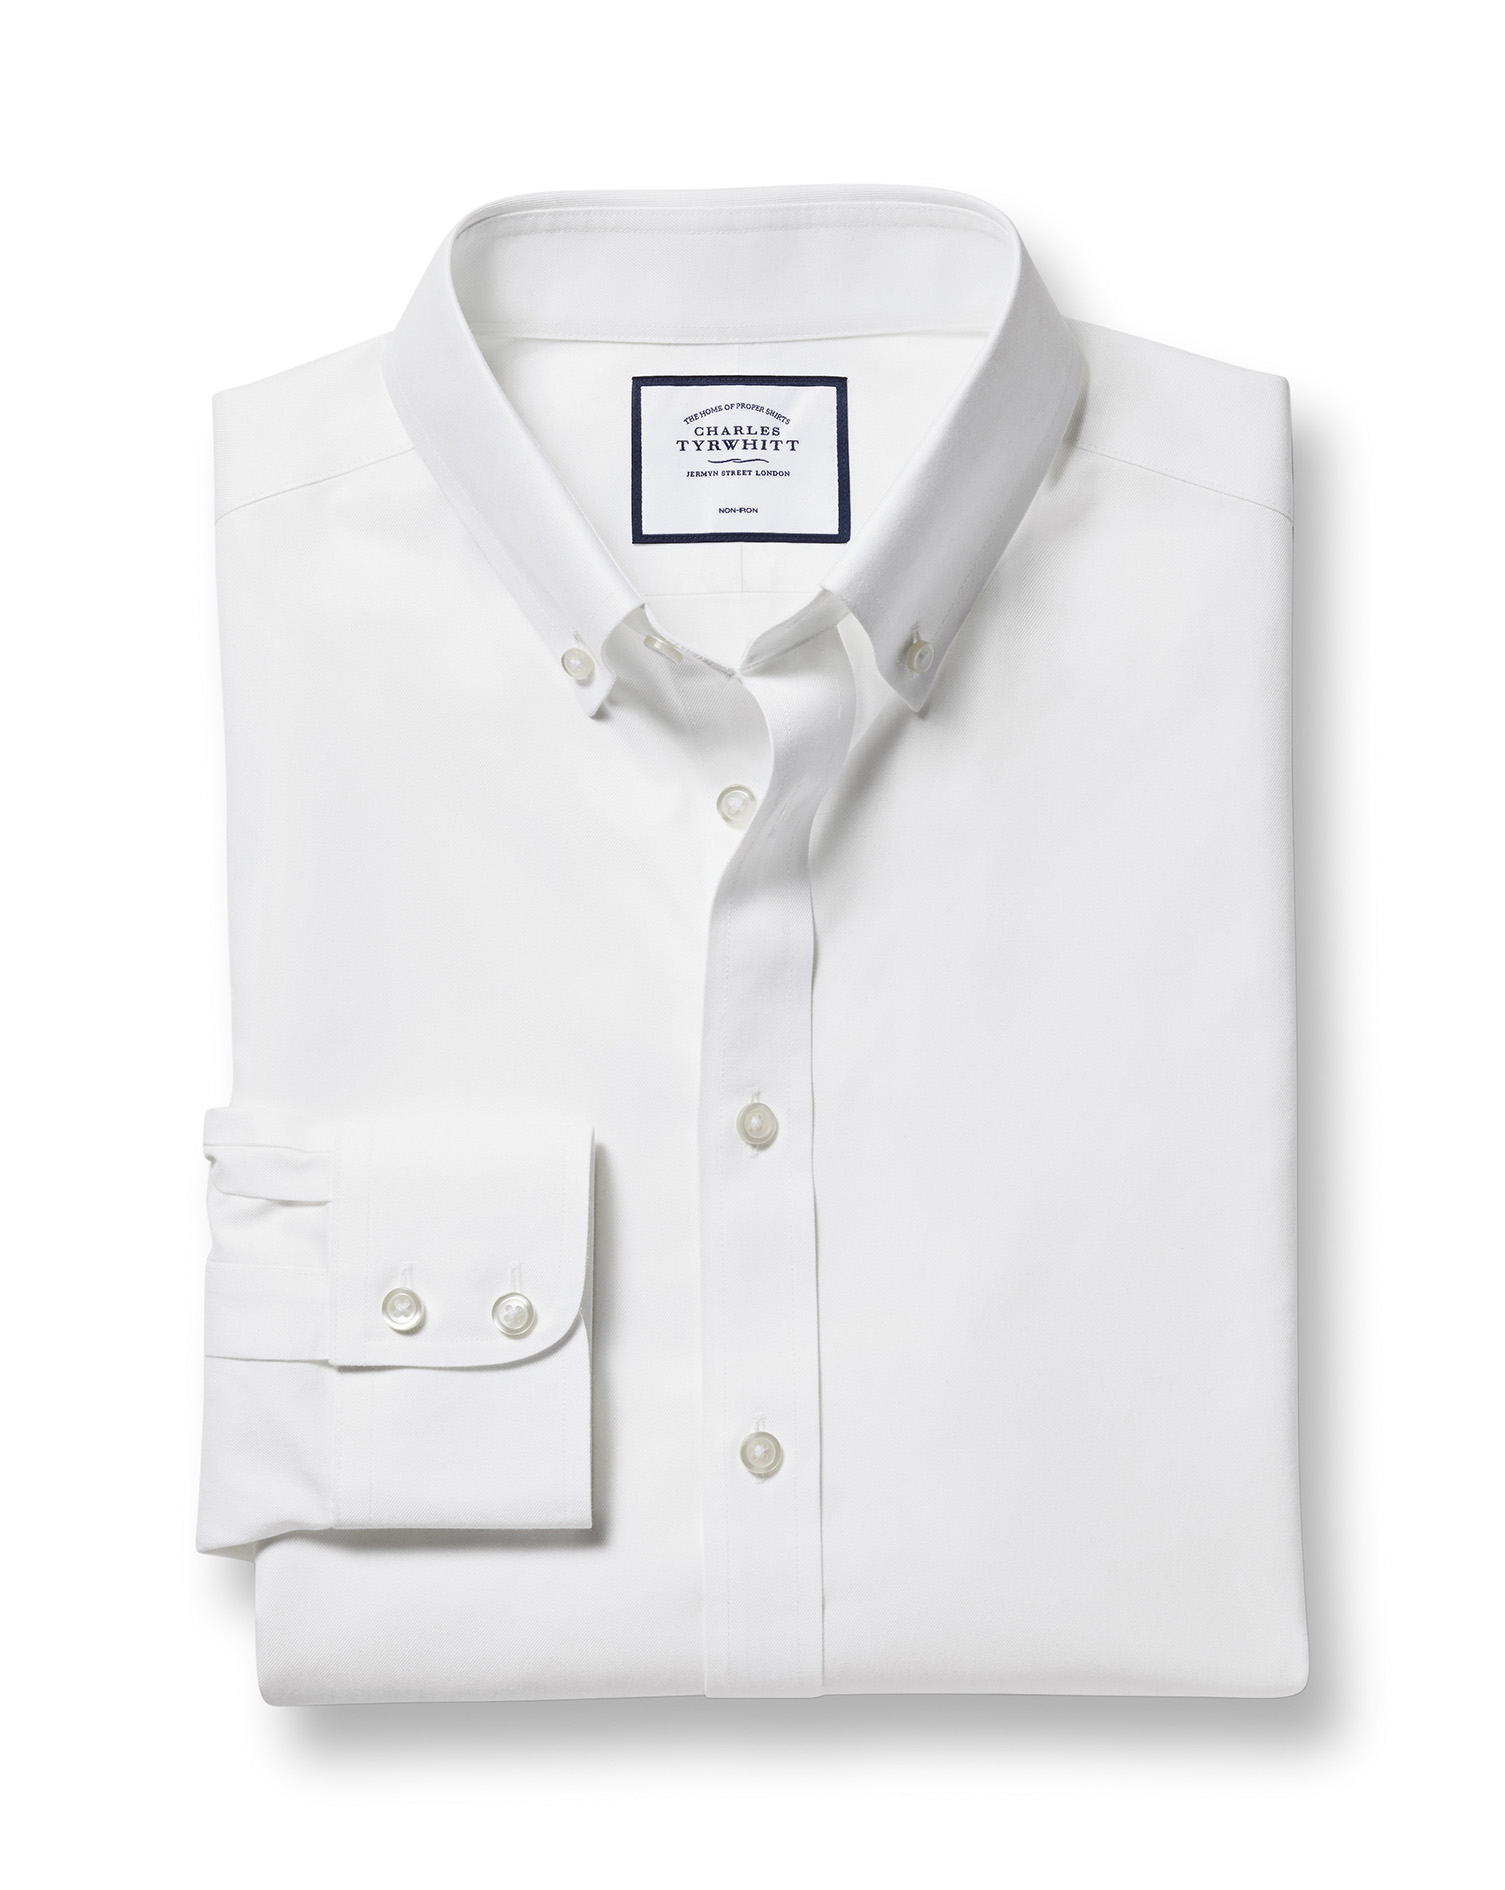 Slim Fit White Button-Down Collar Non-Iron Twill Cotton Formal Shirt Single Cuff Size 17.5/36 by Cha